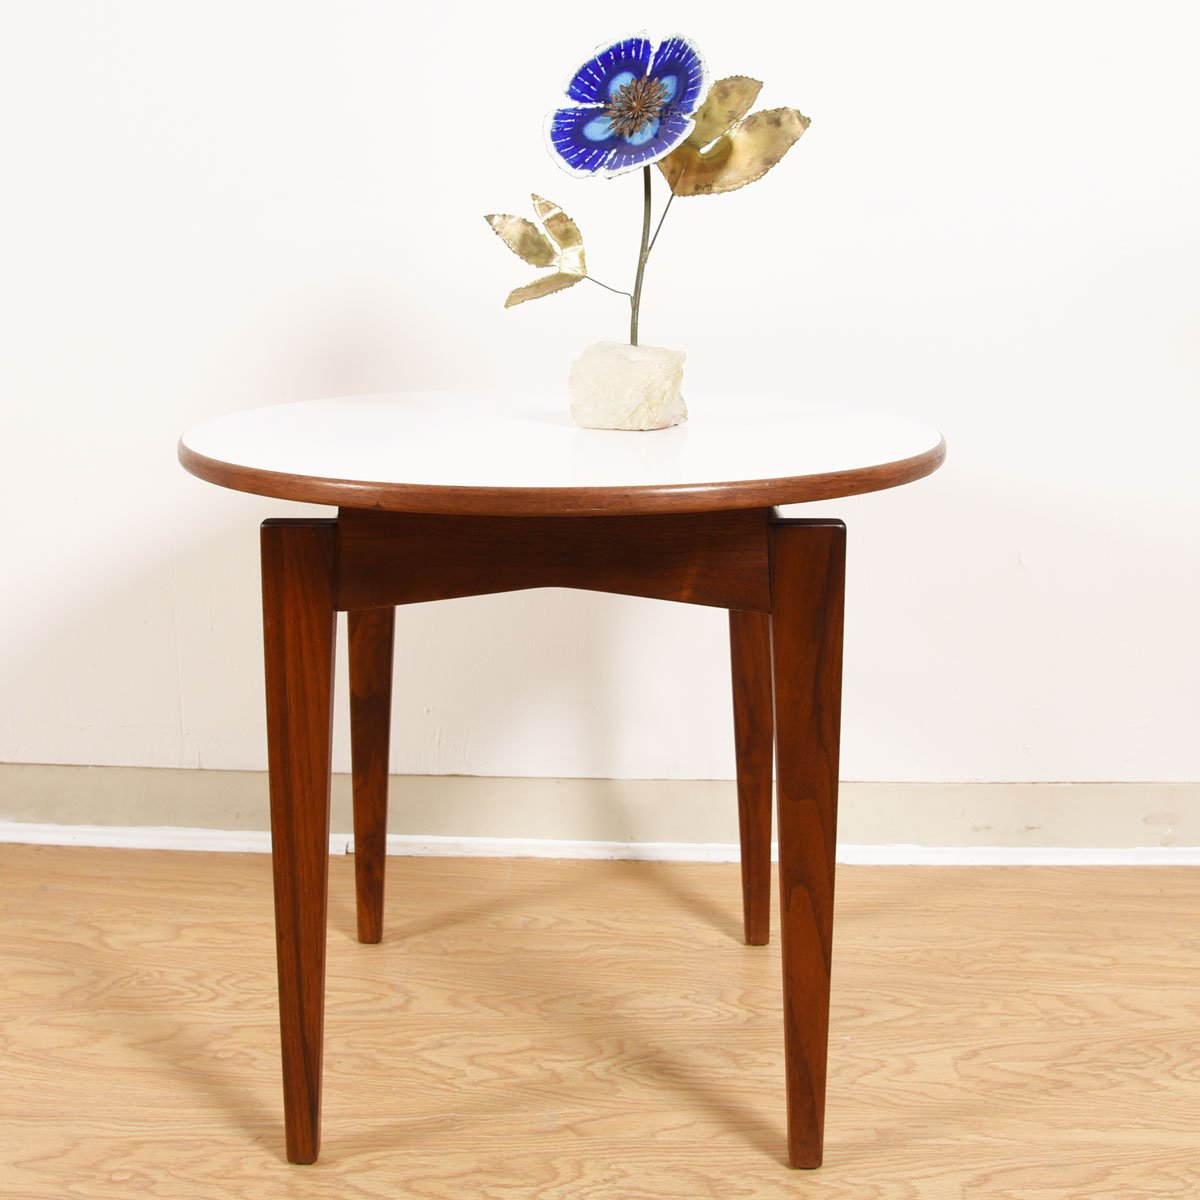 Jens Risom Mid-Century Walnut Round Tall Accent / Coffee Table